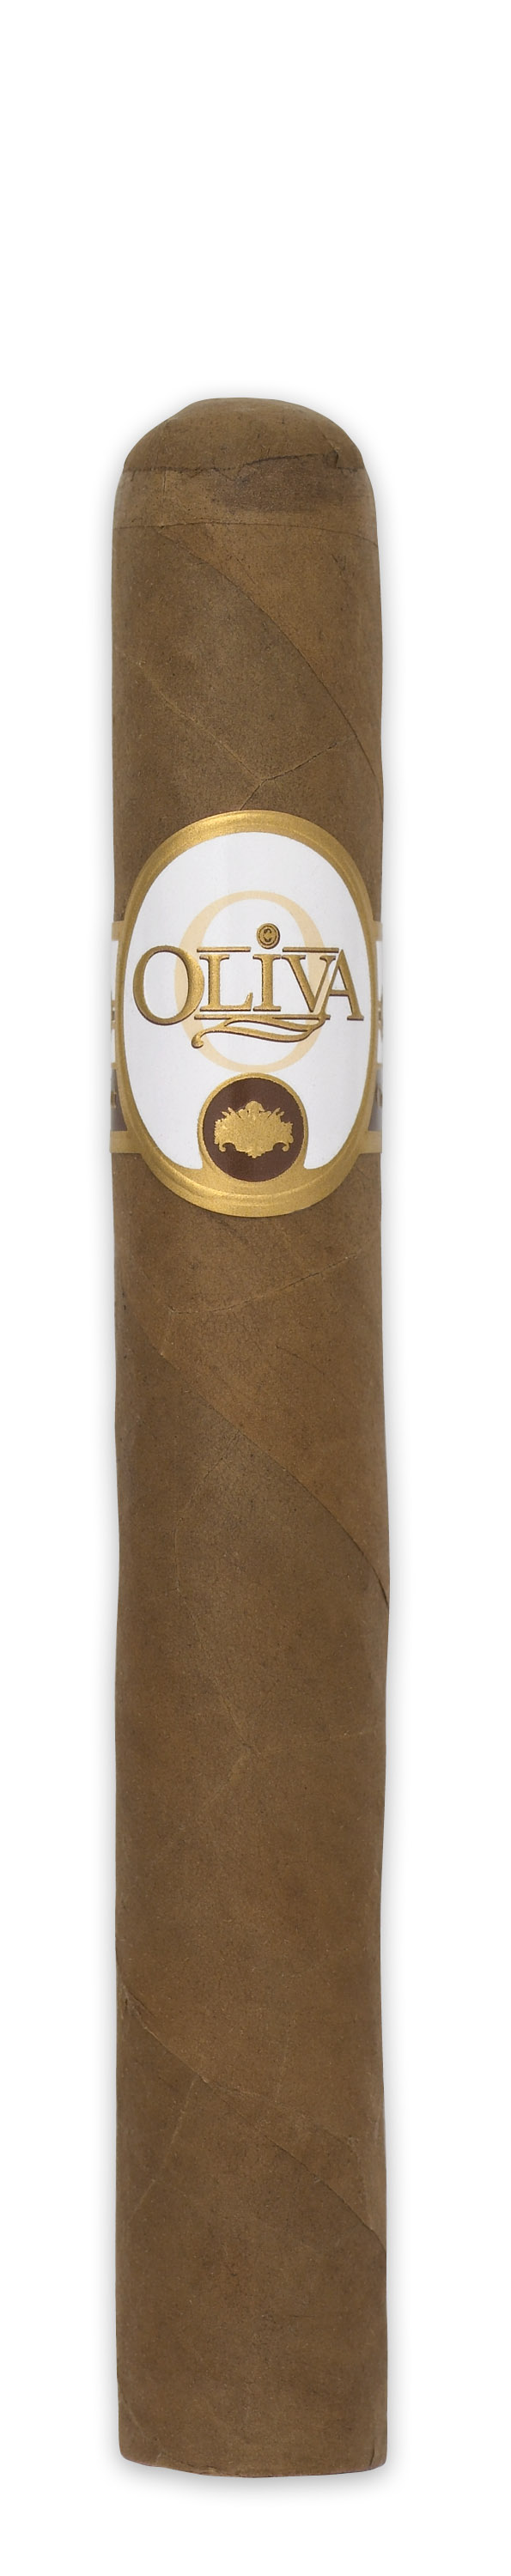 Oliva Connecticut Double Toro 5-pack